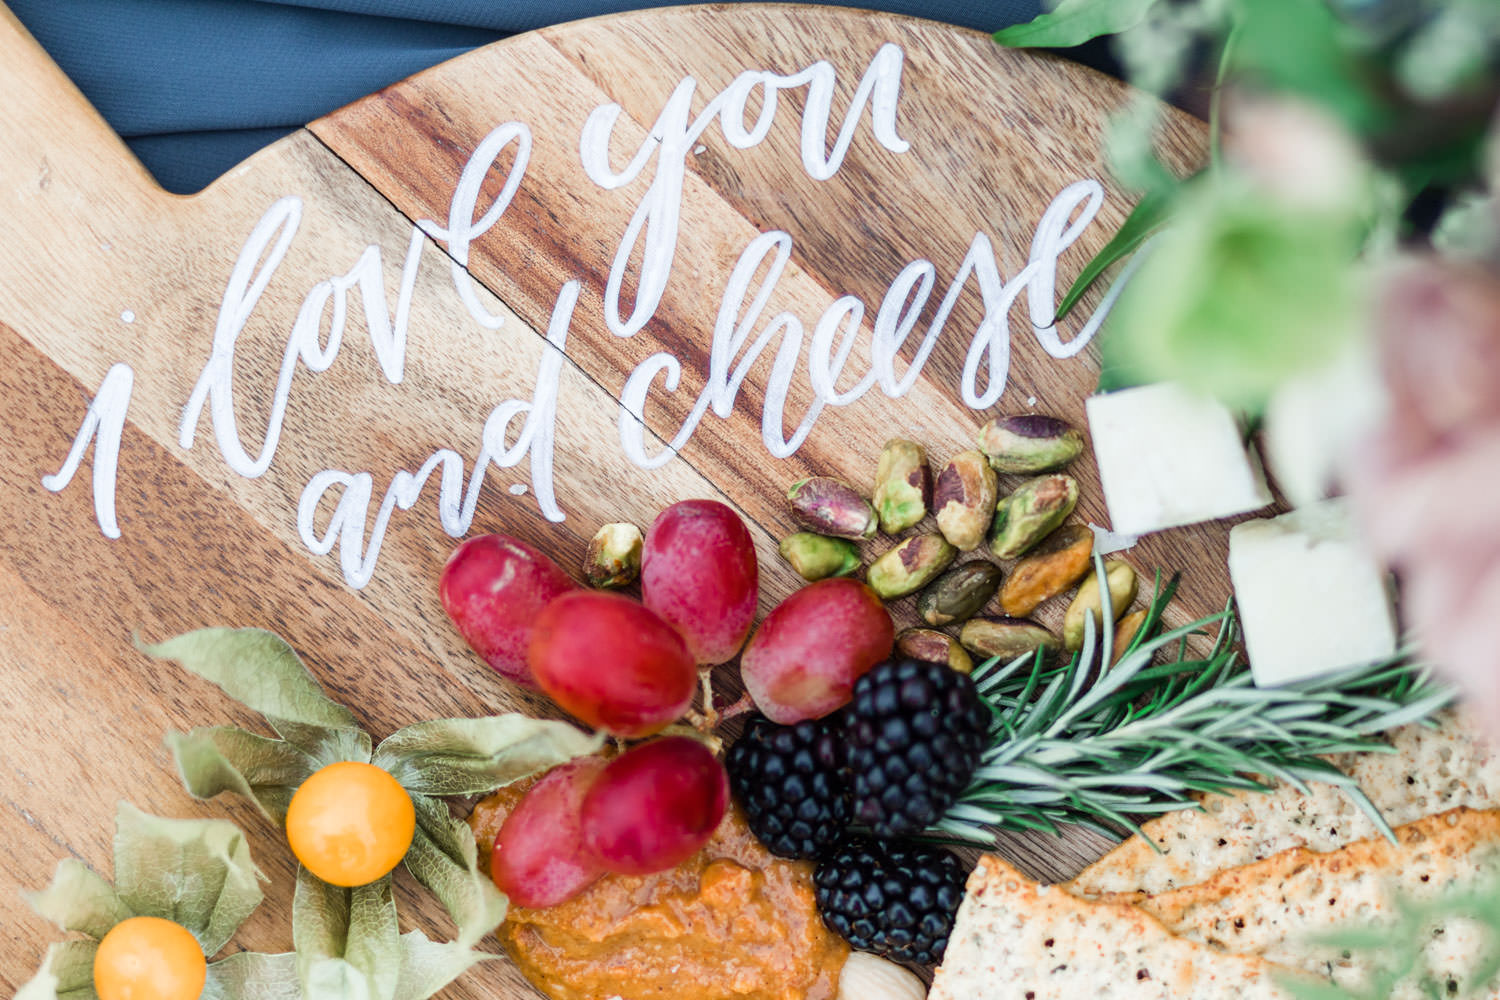 Calligraphy I love you and cheese on a cheese wooden board with fruits, Cavin Elizabeth Photography